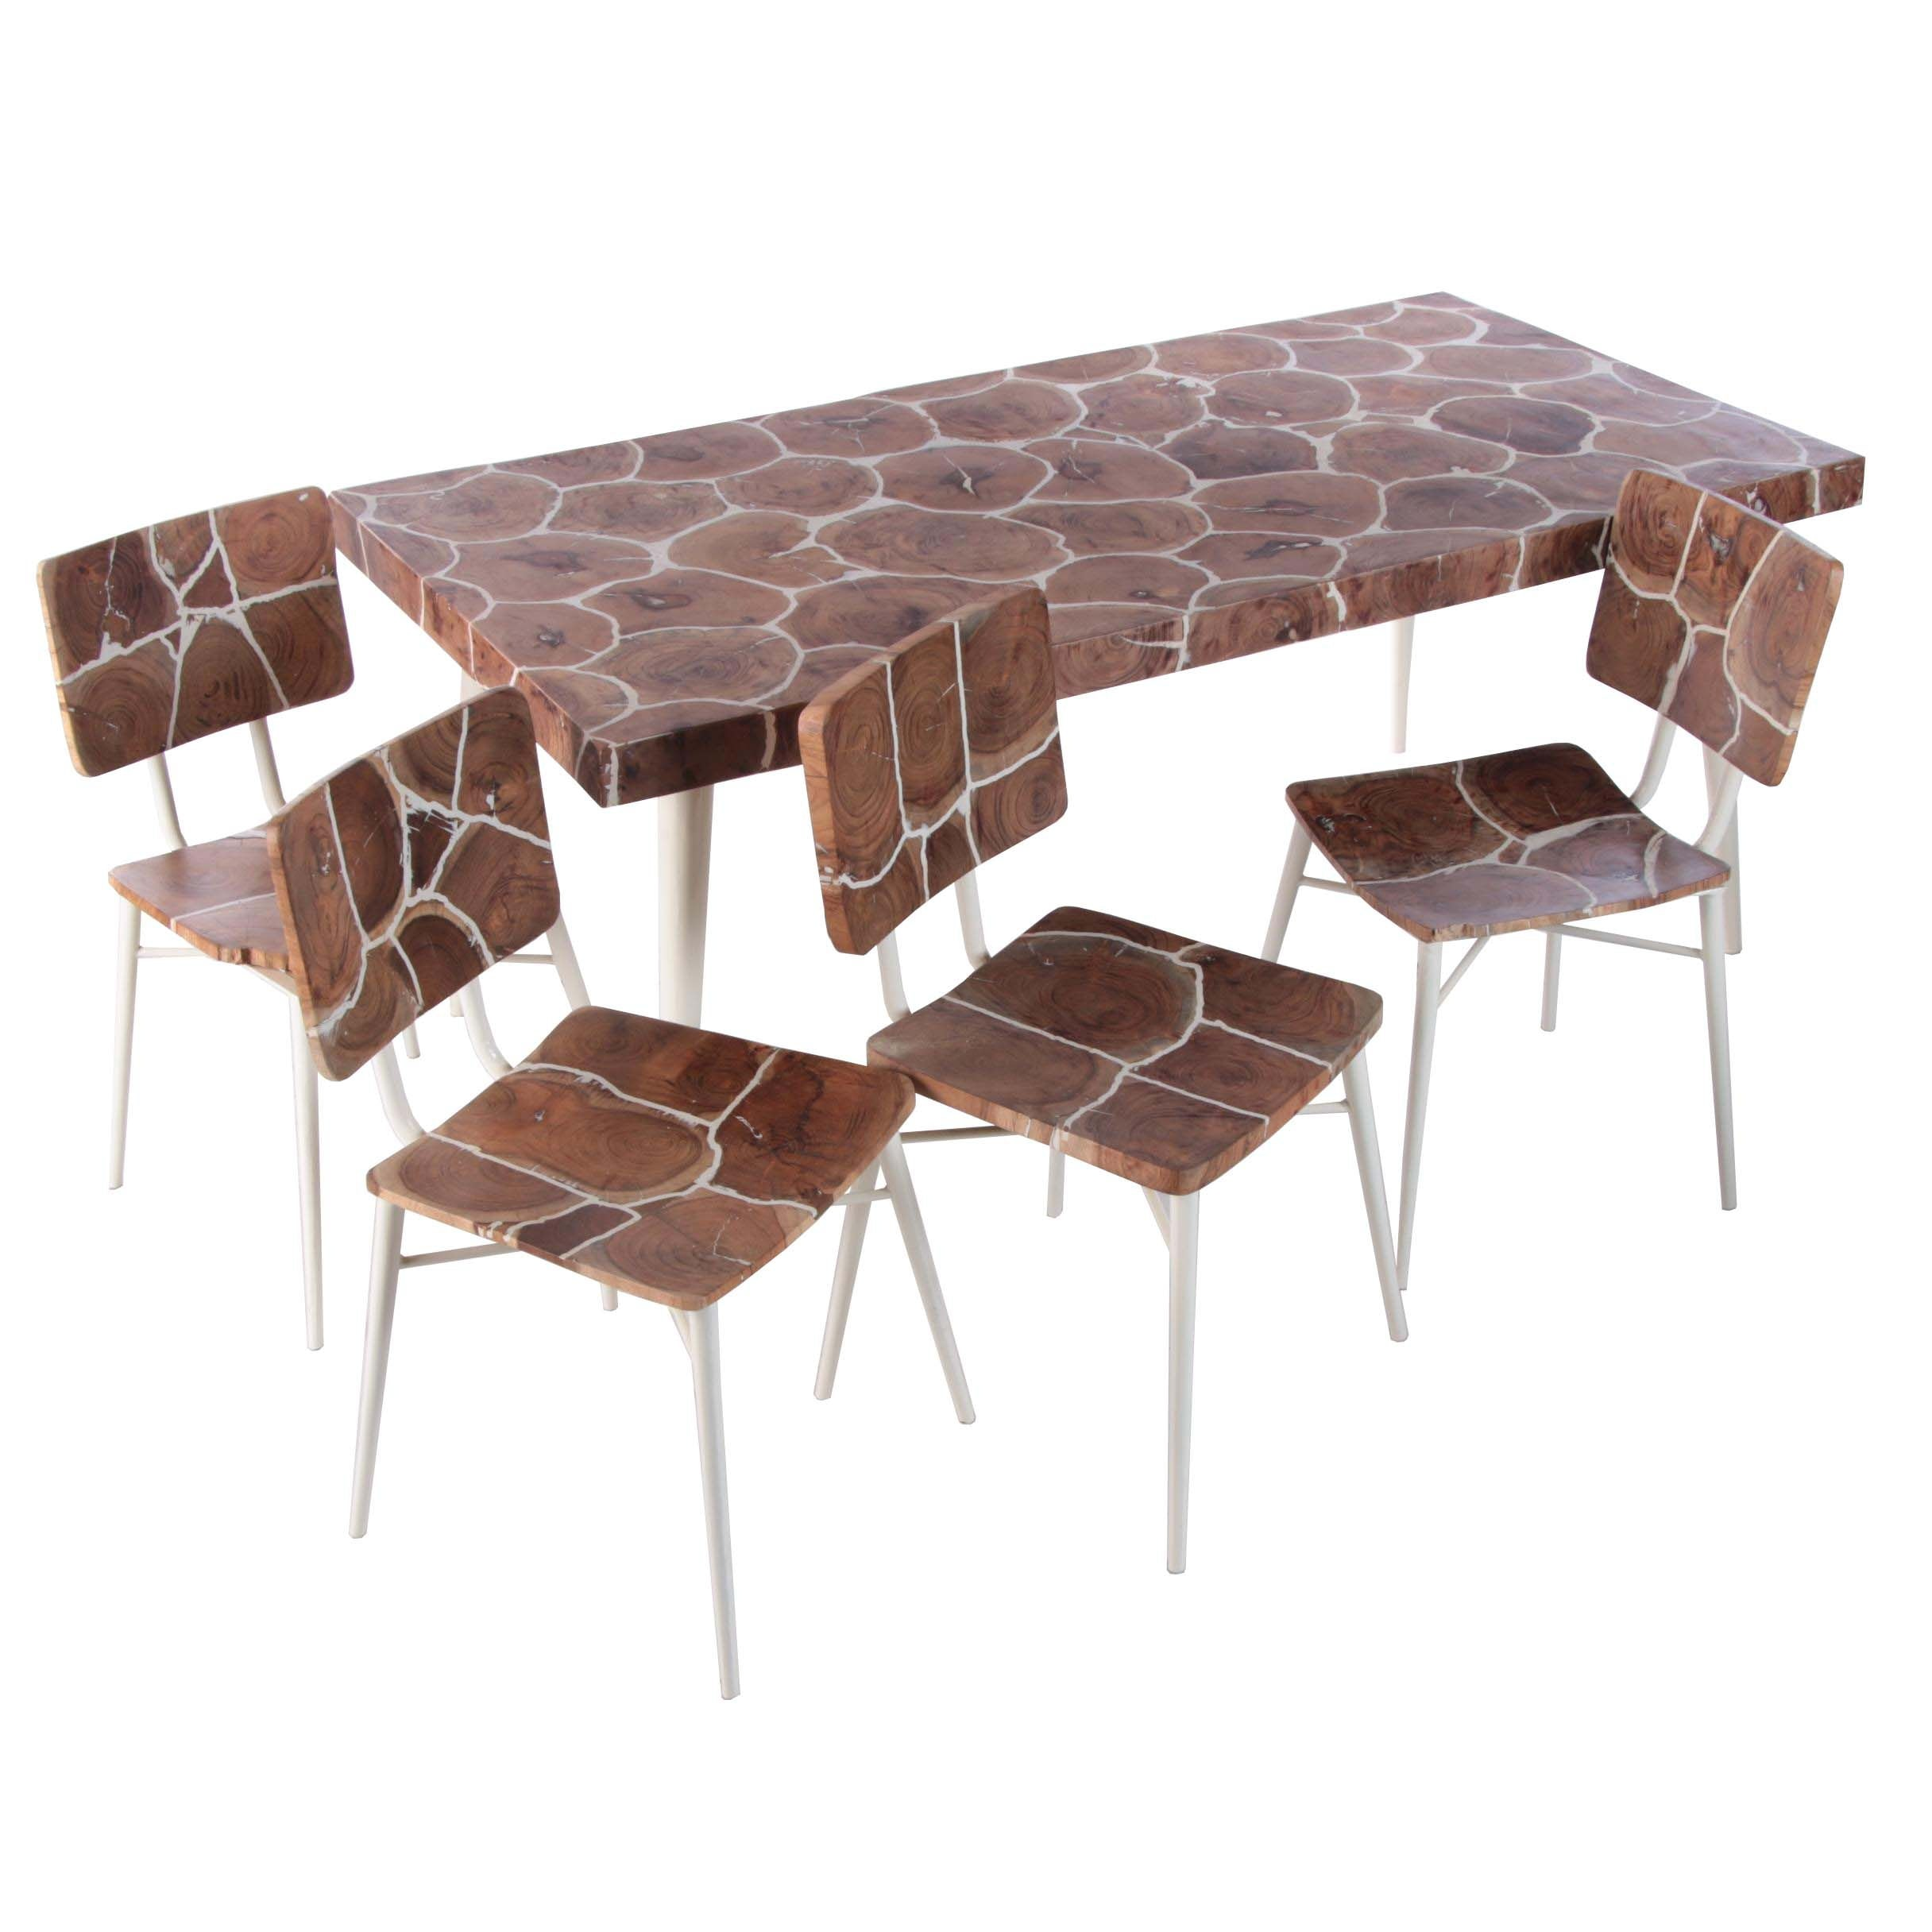 """Organics"" Wood and Enamel Dining Table and Chairs, 21st Century"